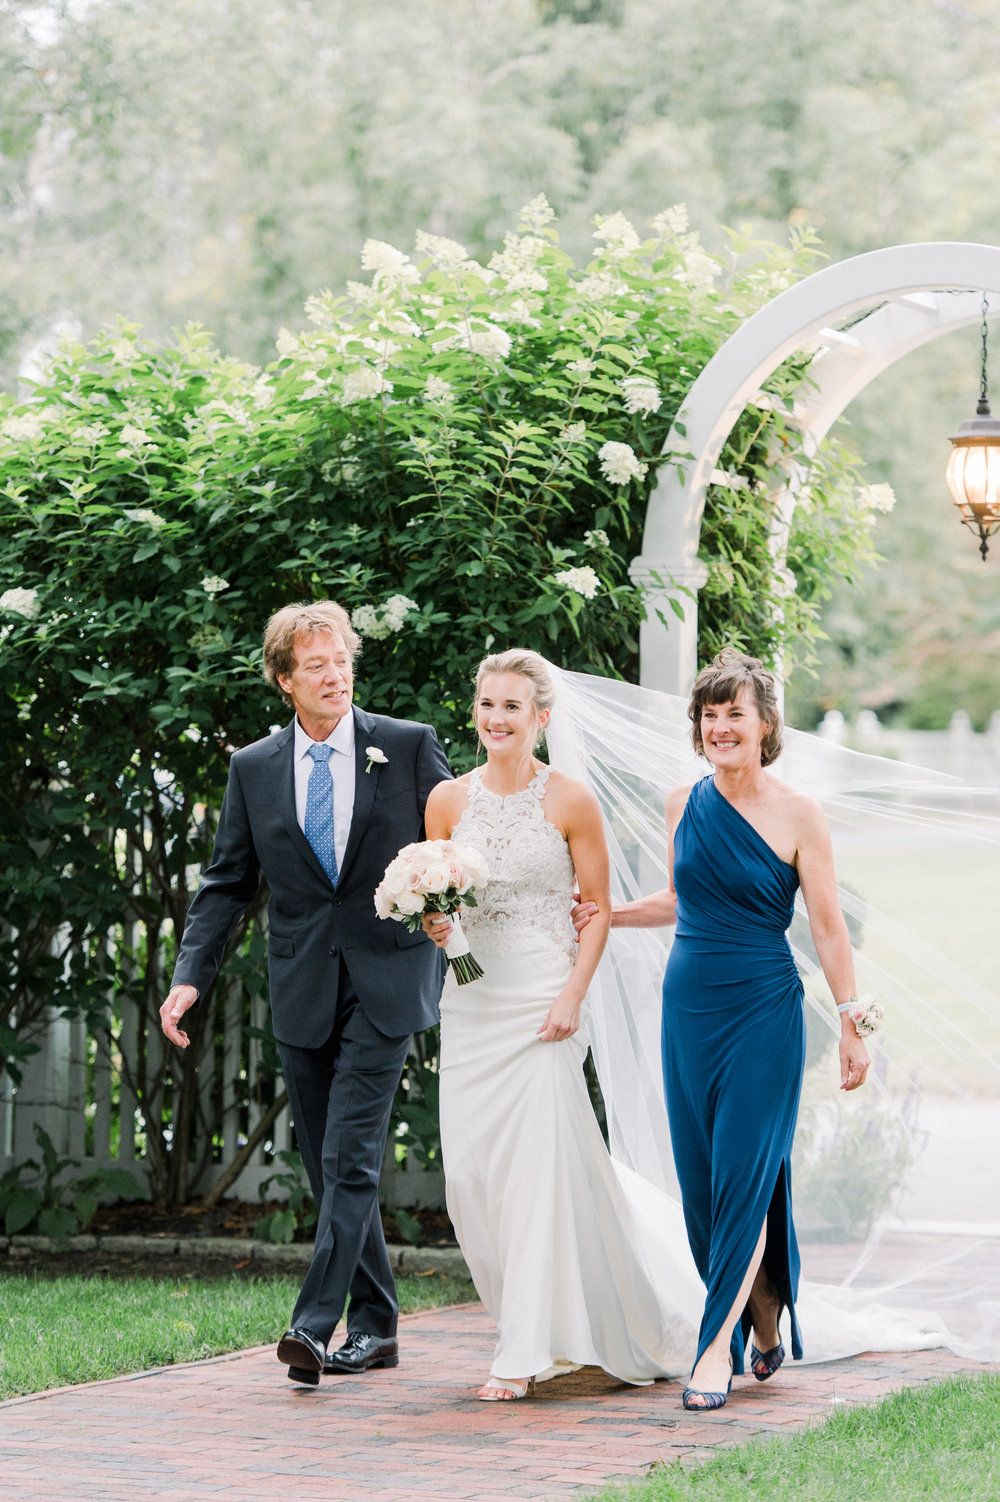 The Commons 1854 Topsfield MA wedding | Massachusetts wedding venue | Massachusetts wedding photography | bride and parents walking down the aisle | ceremony inspiration